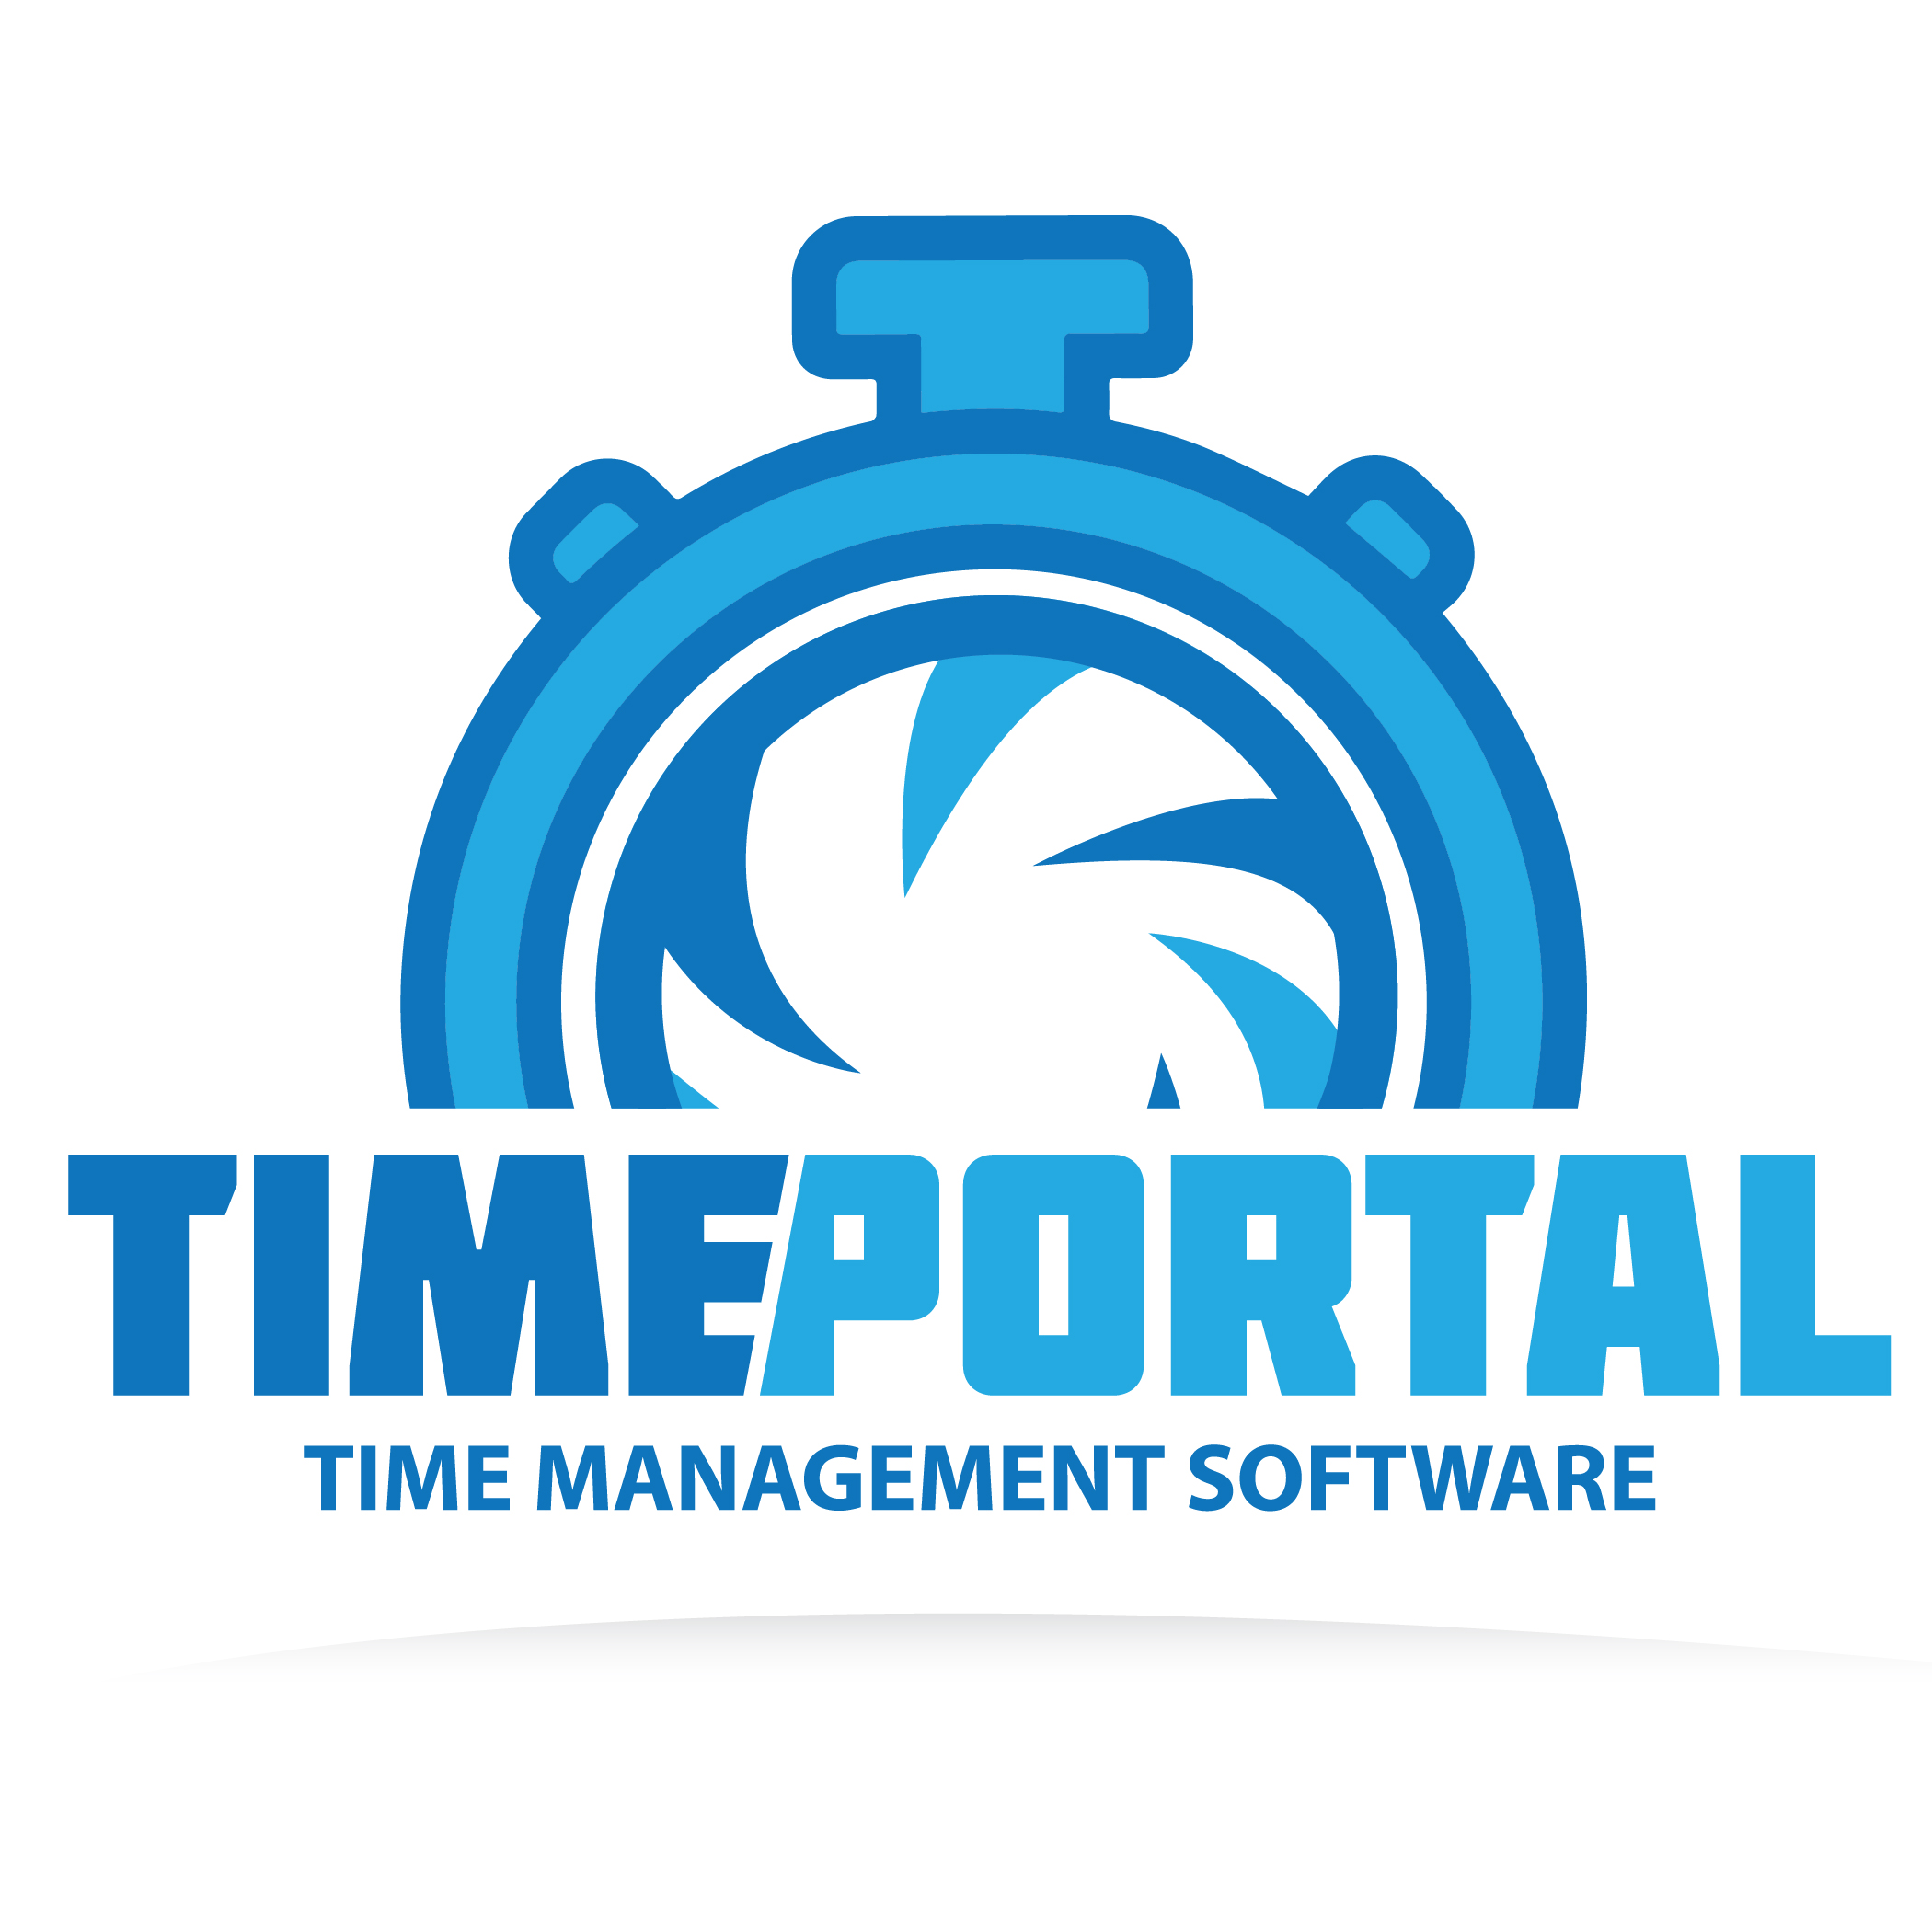 Support | Time Portal, LLC Help Center home page